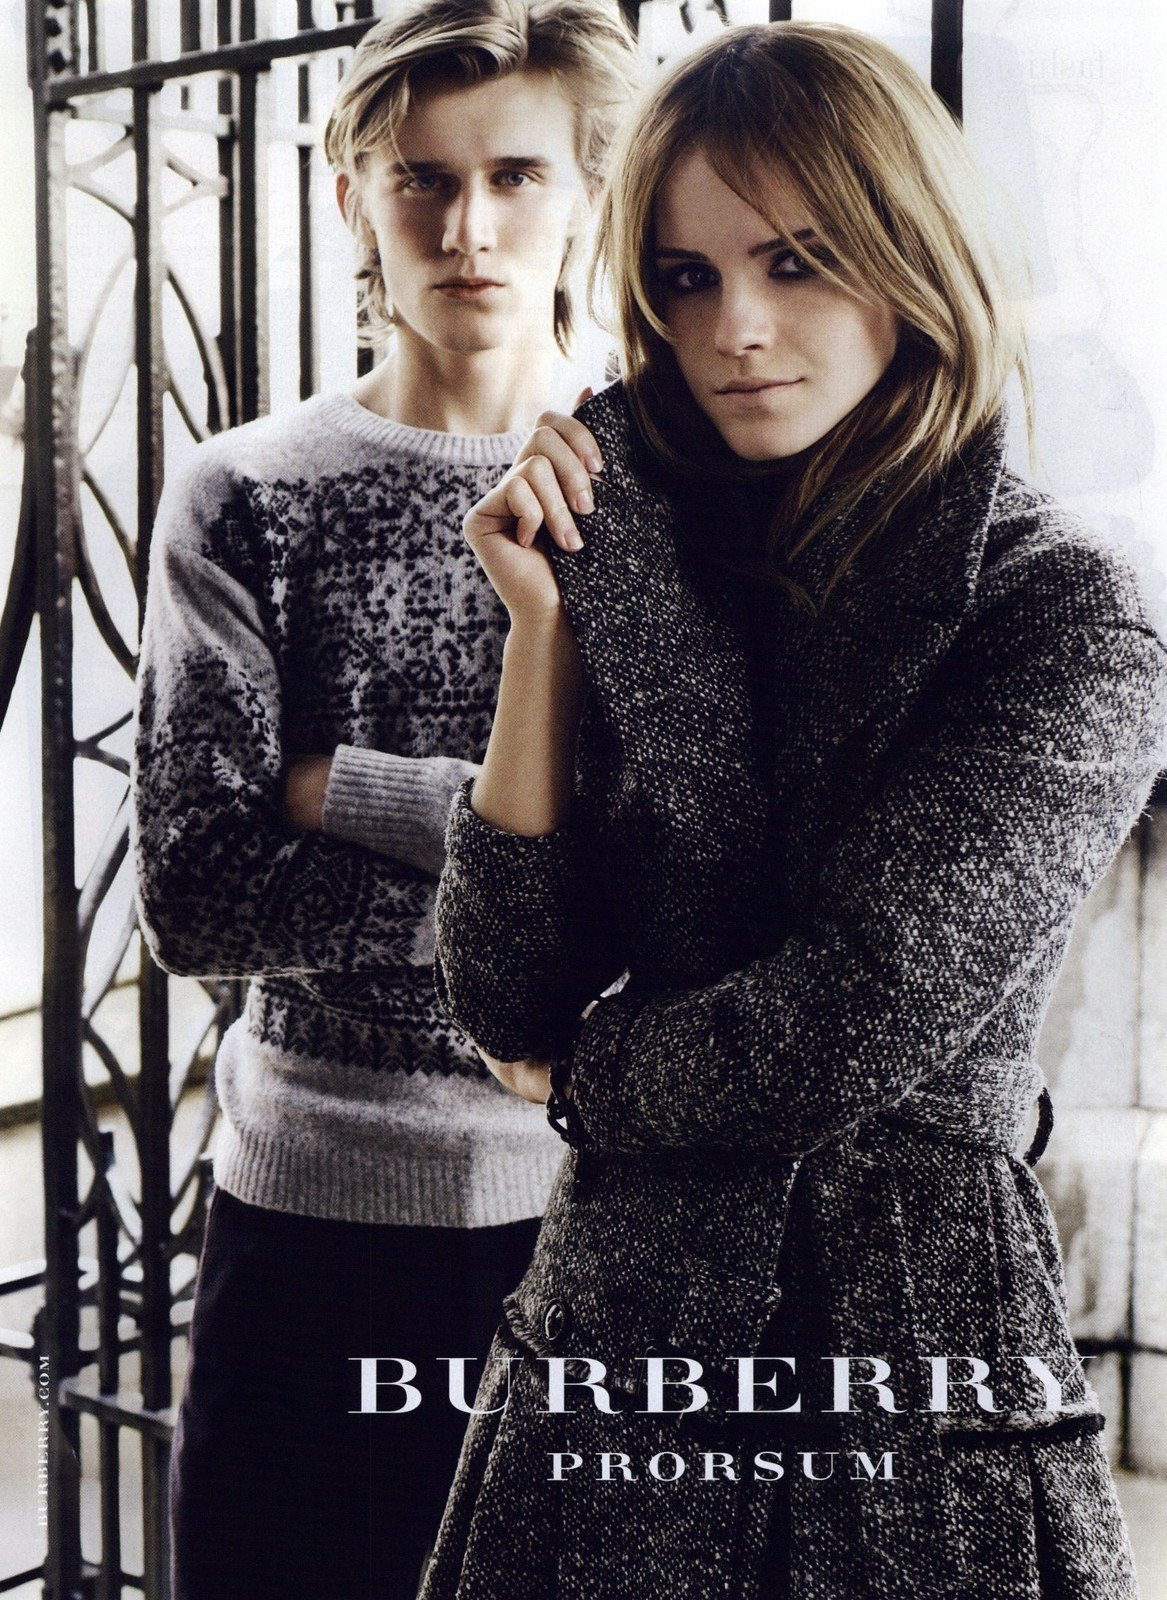 burberry, बरबरी Autumn/Winter Campaign '09